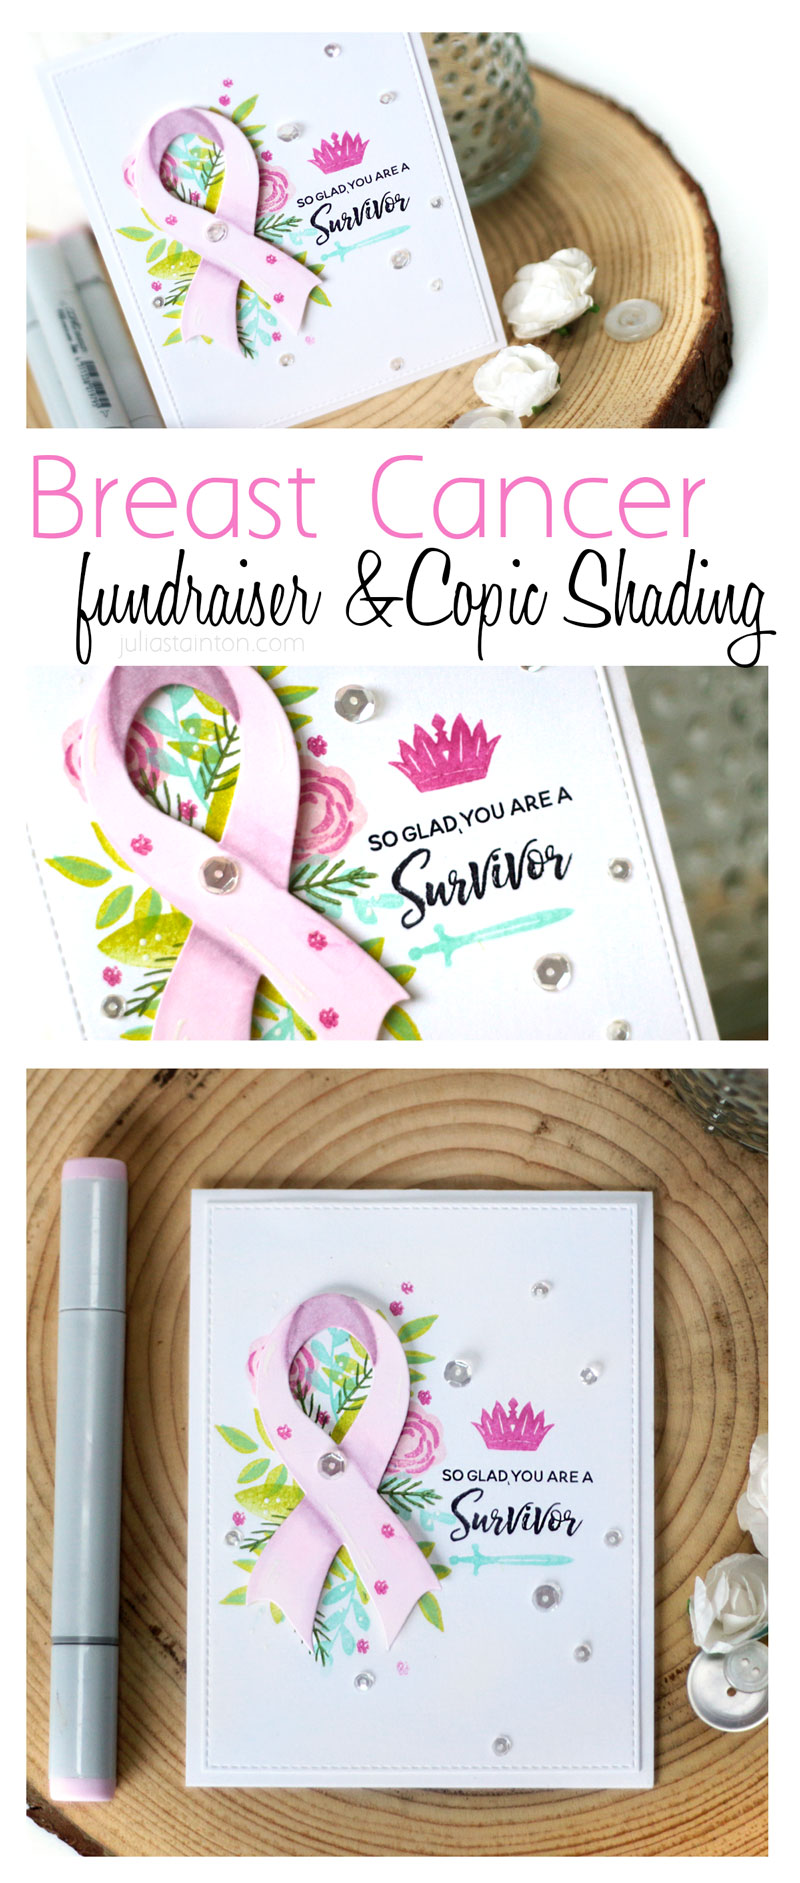 Courage Breast Cancer Fundraiser Stamp Set and Copic Marker Shading on Die-Cuts